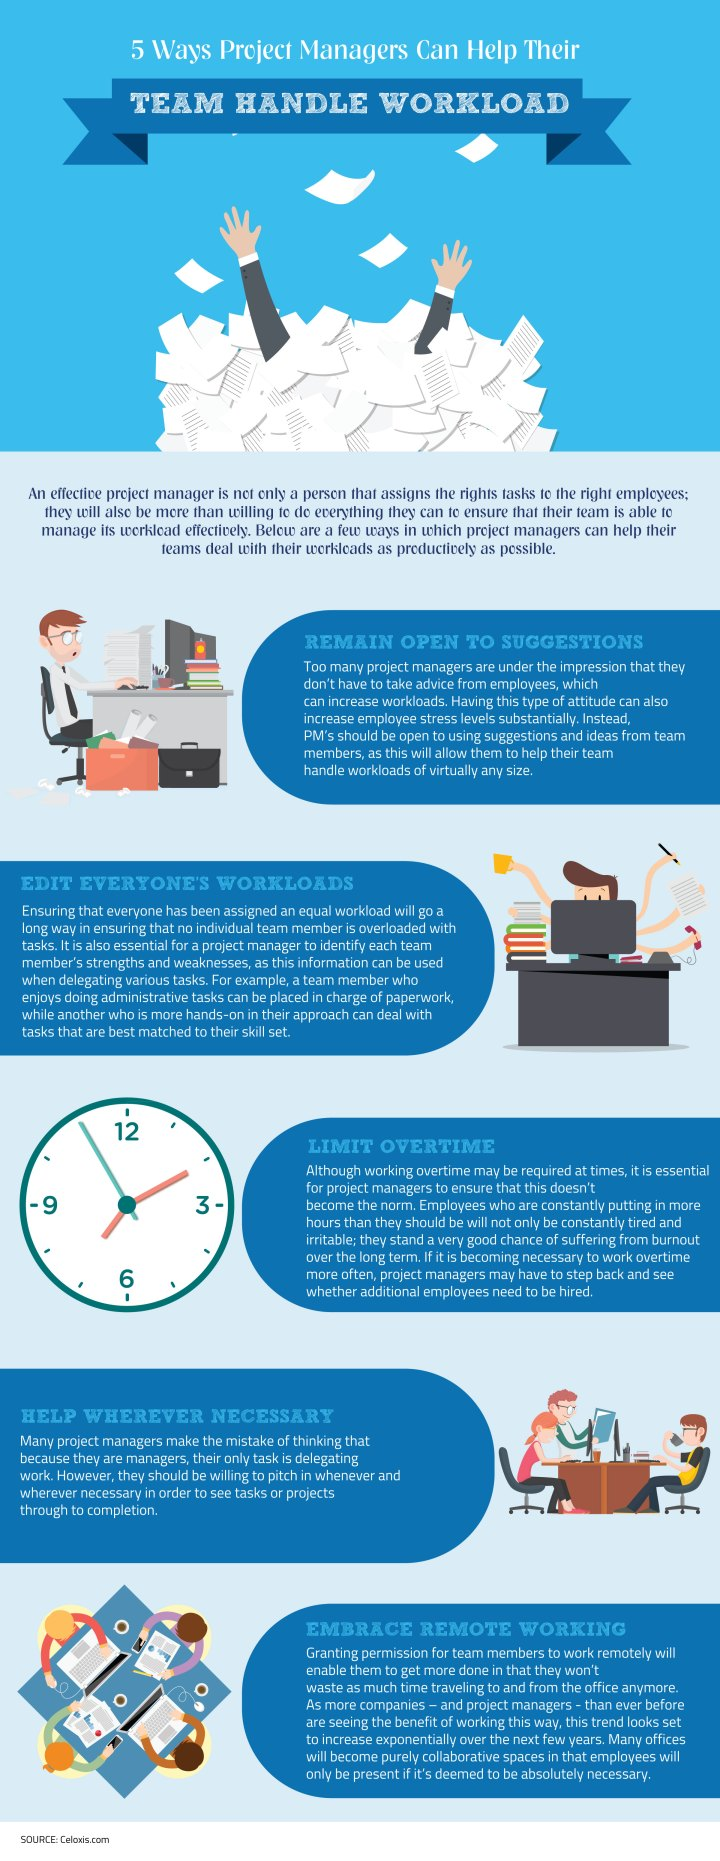 INFOGRAPHIC: 5 Ways Project Managers Can Help Their Team Handle Workload